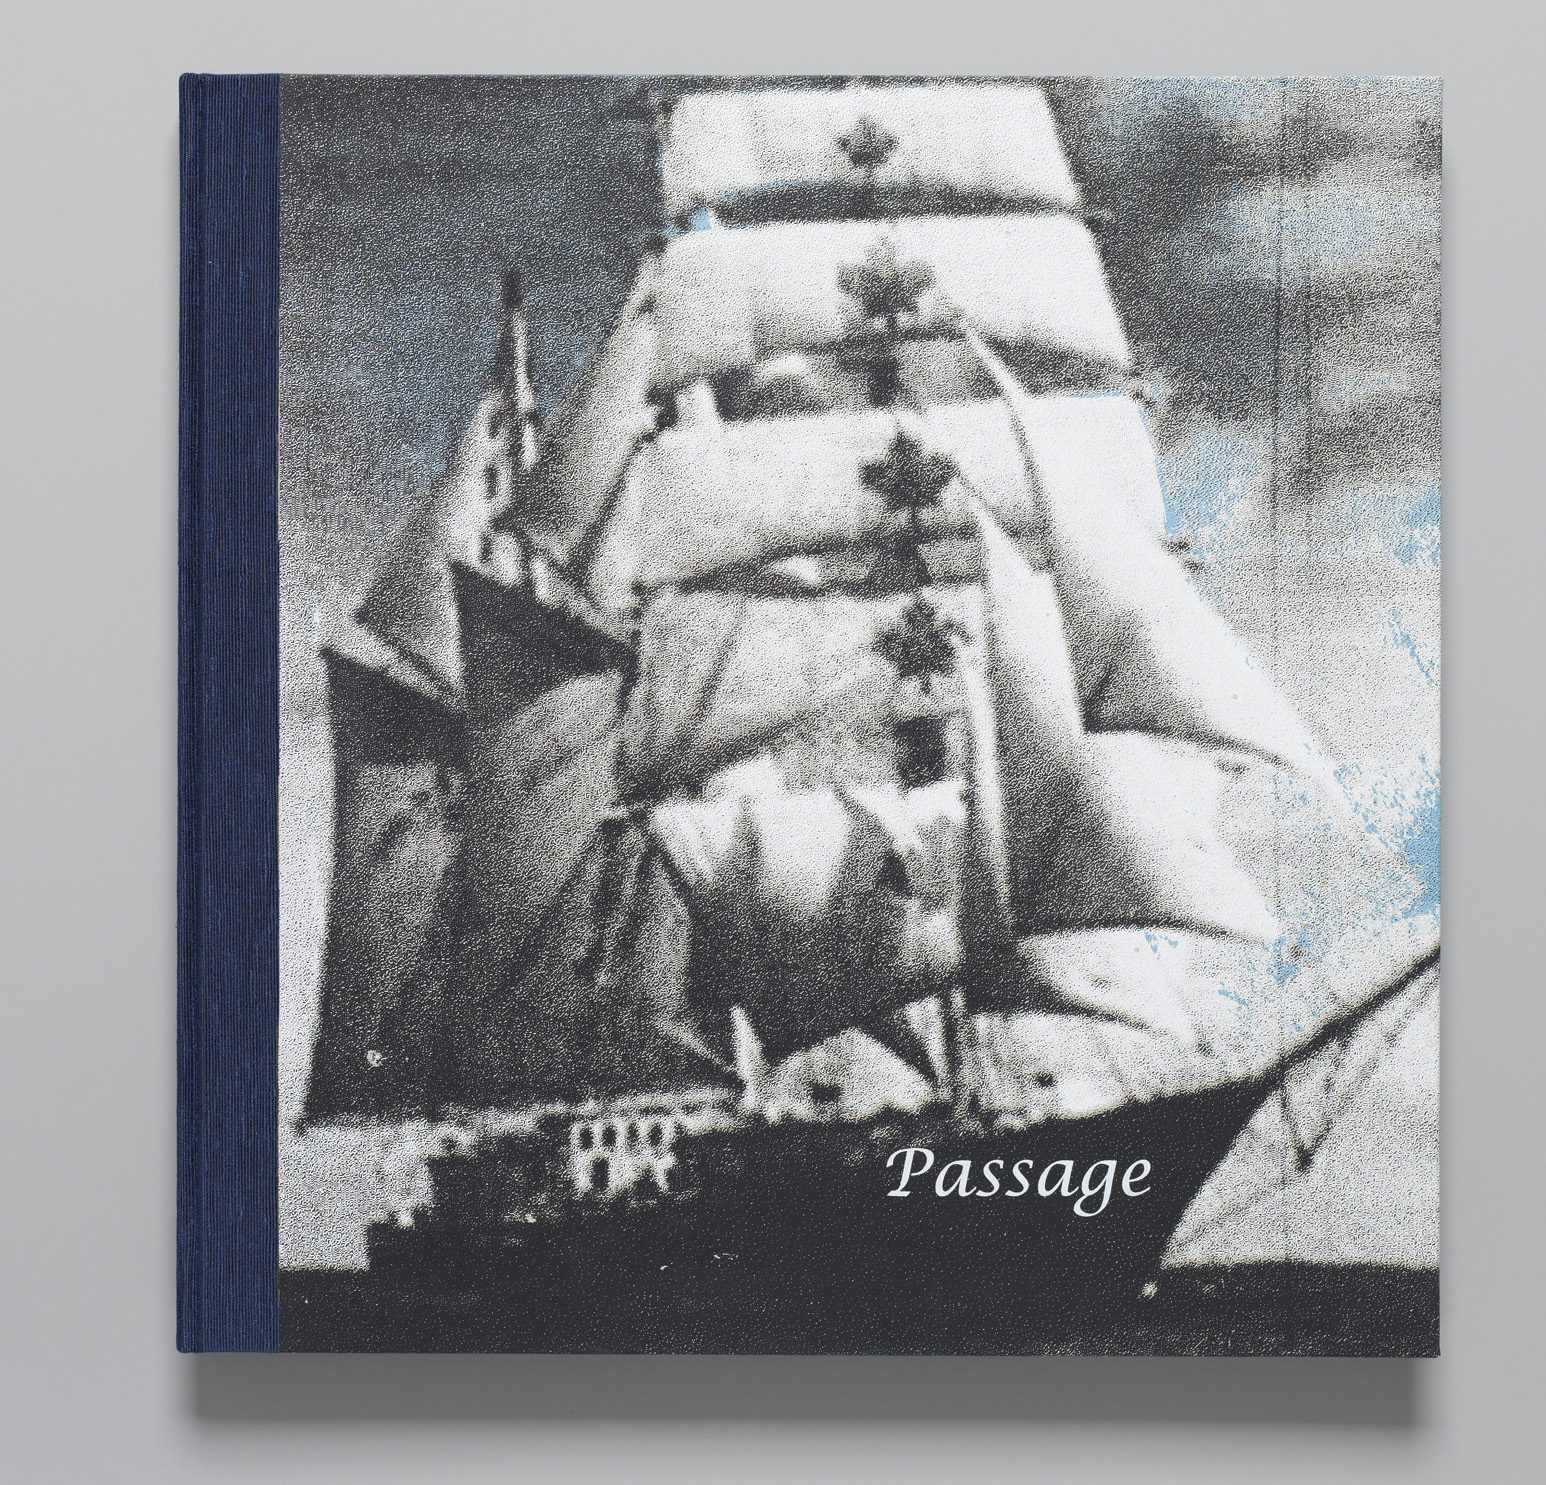 The front cover of Passage. Image courtesy of the artist.